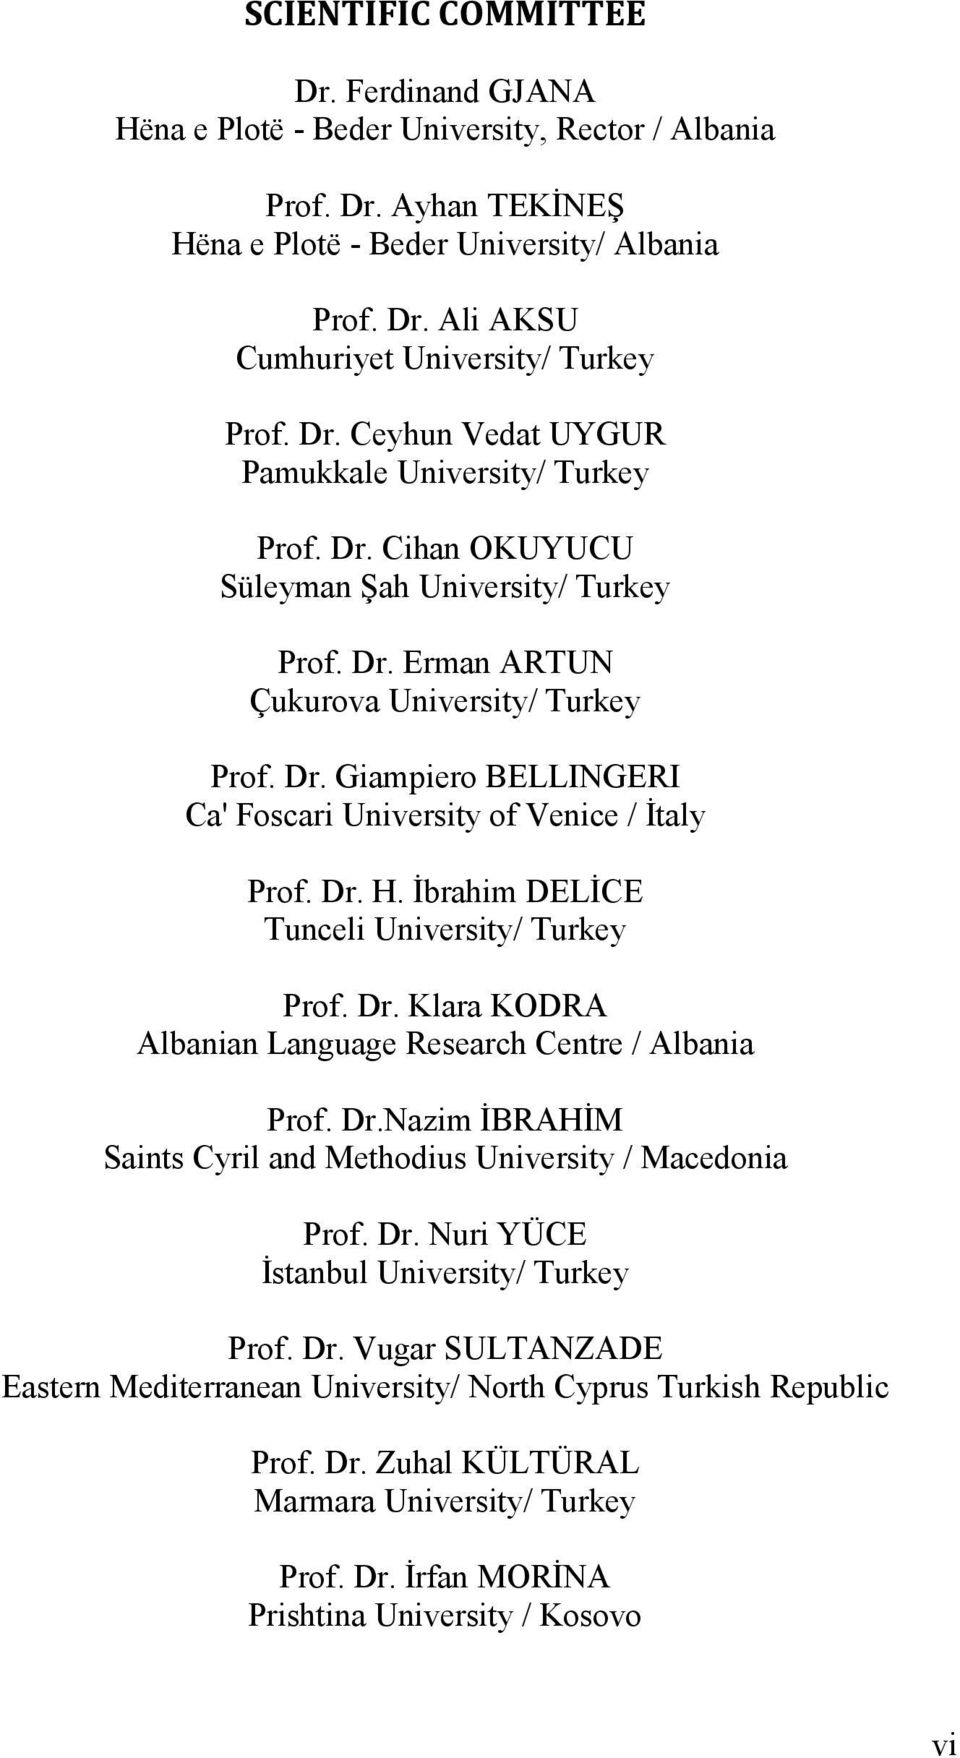 Dr. H. İbrahim DELİCE Tunceli University/ Turkey Prof. Dr. Klara KODRA Albanian Language Research Centre / Albania Prof. Dr.Nazim İBRAHİM Saints Cyril and Methodius University / Macedonia Prof. Dr. Nuri YÜCE İstanbul University/ Turkey Prof.